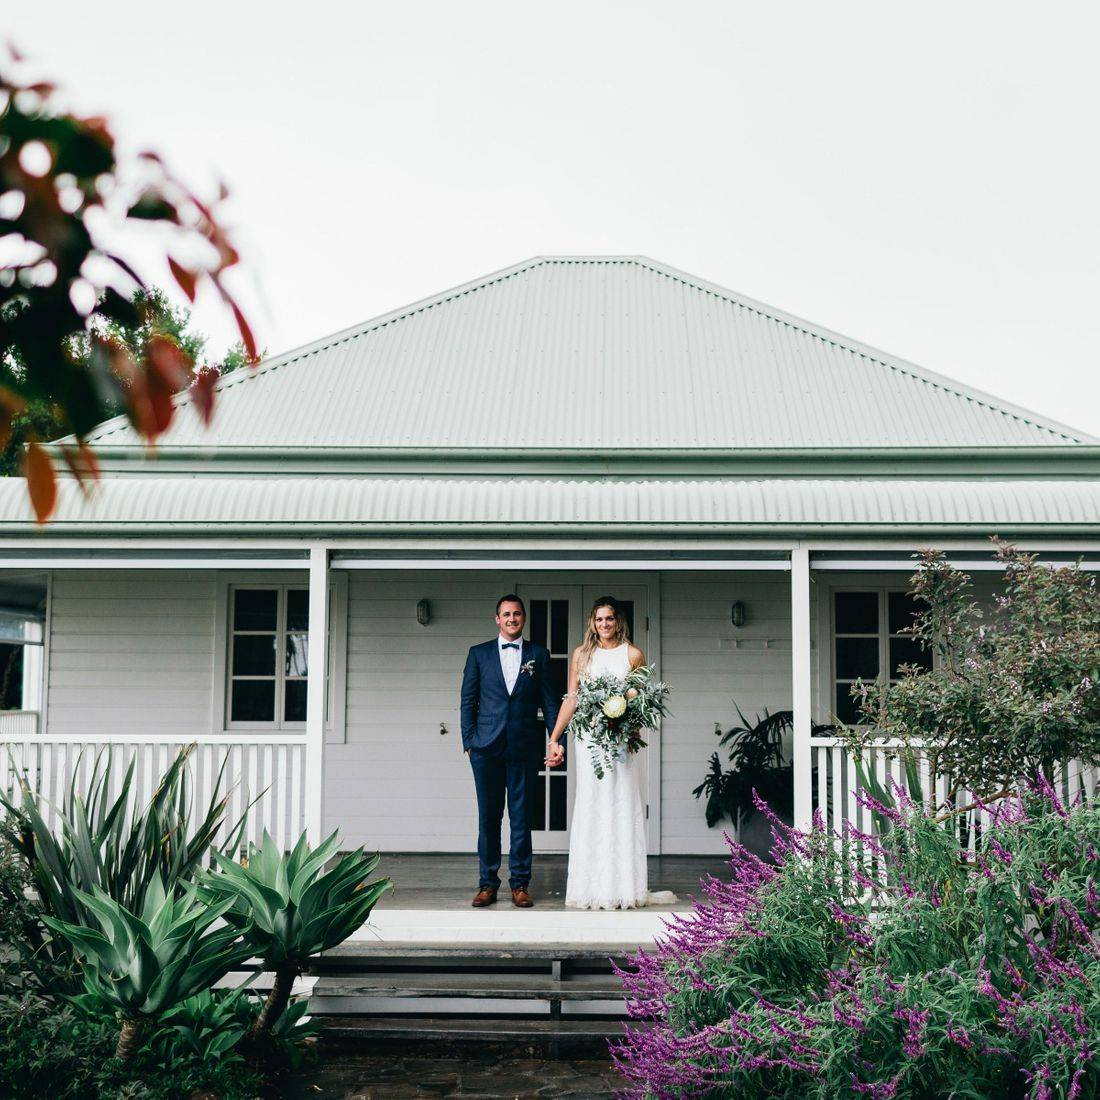 Maddy and Jack's elopement Wedding